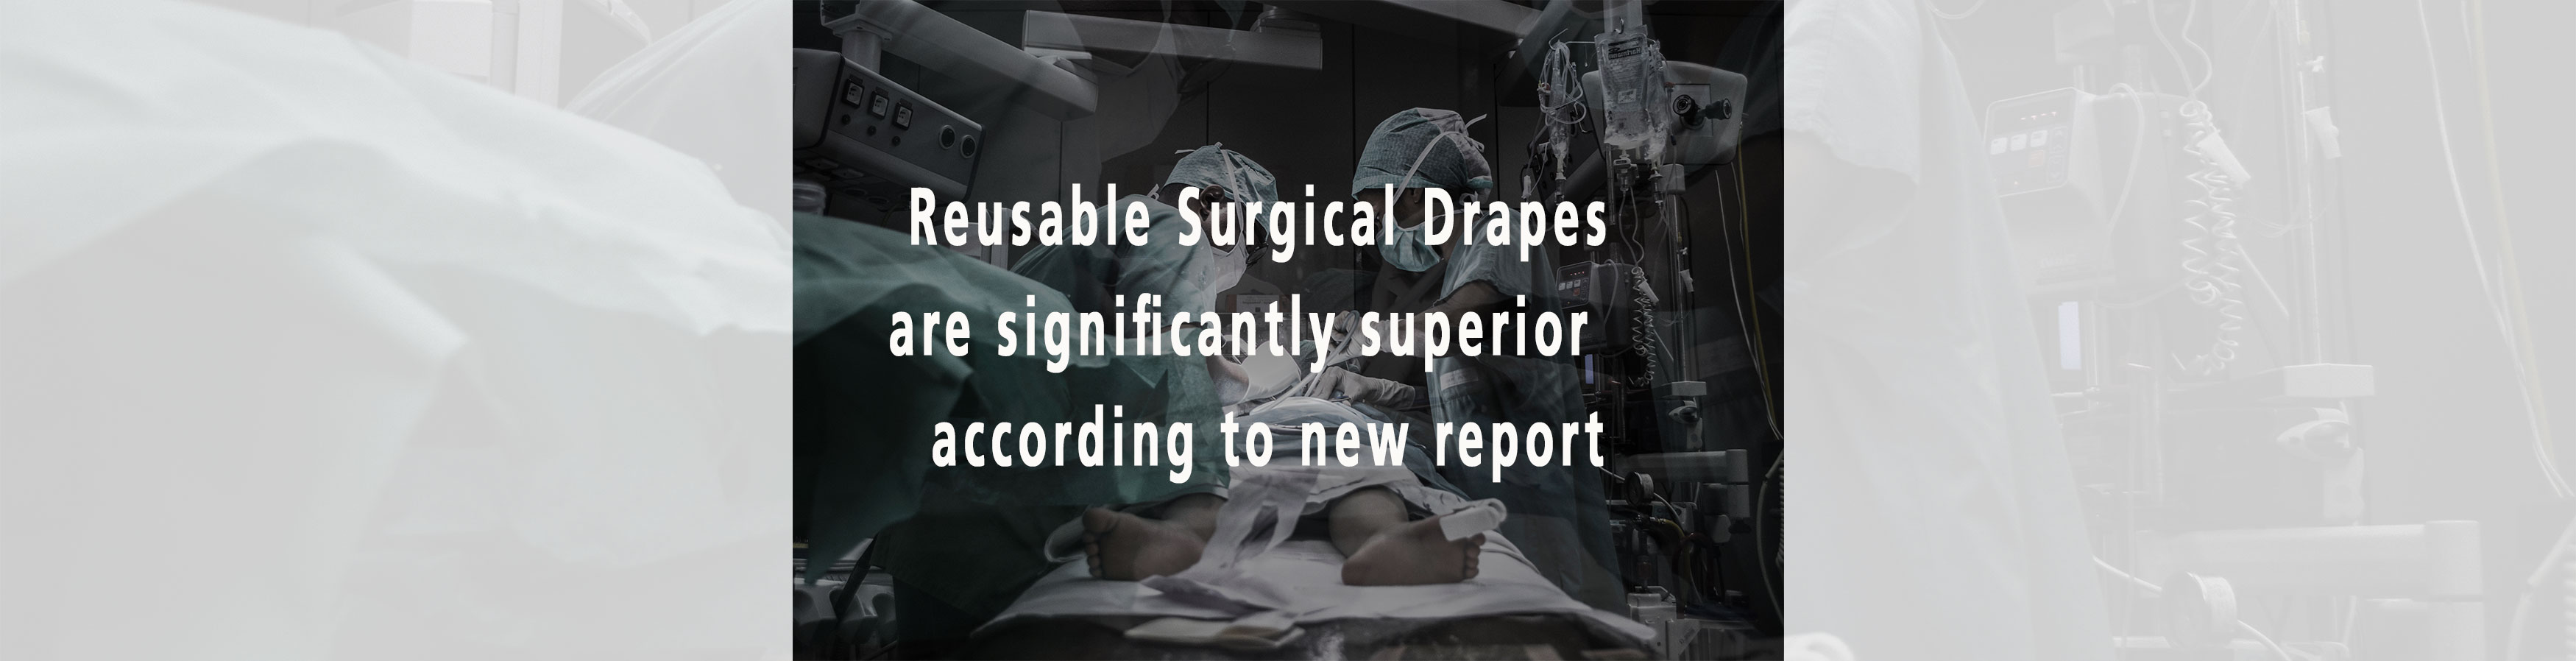 HUBSPOT-Reusable-Surgical-Drapes-are-superior